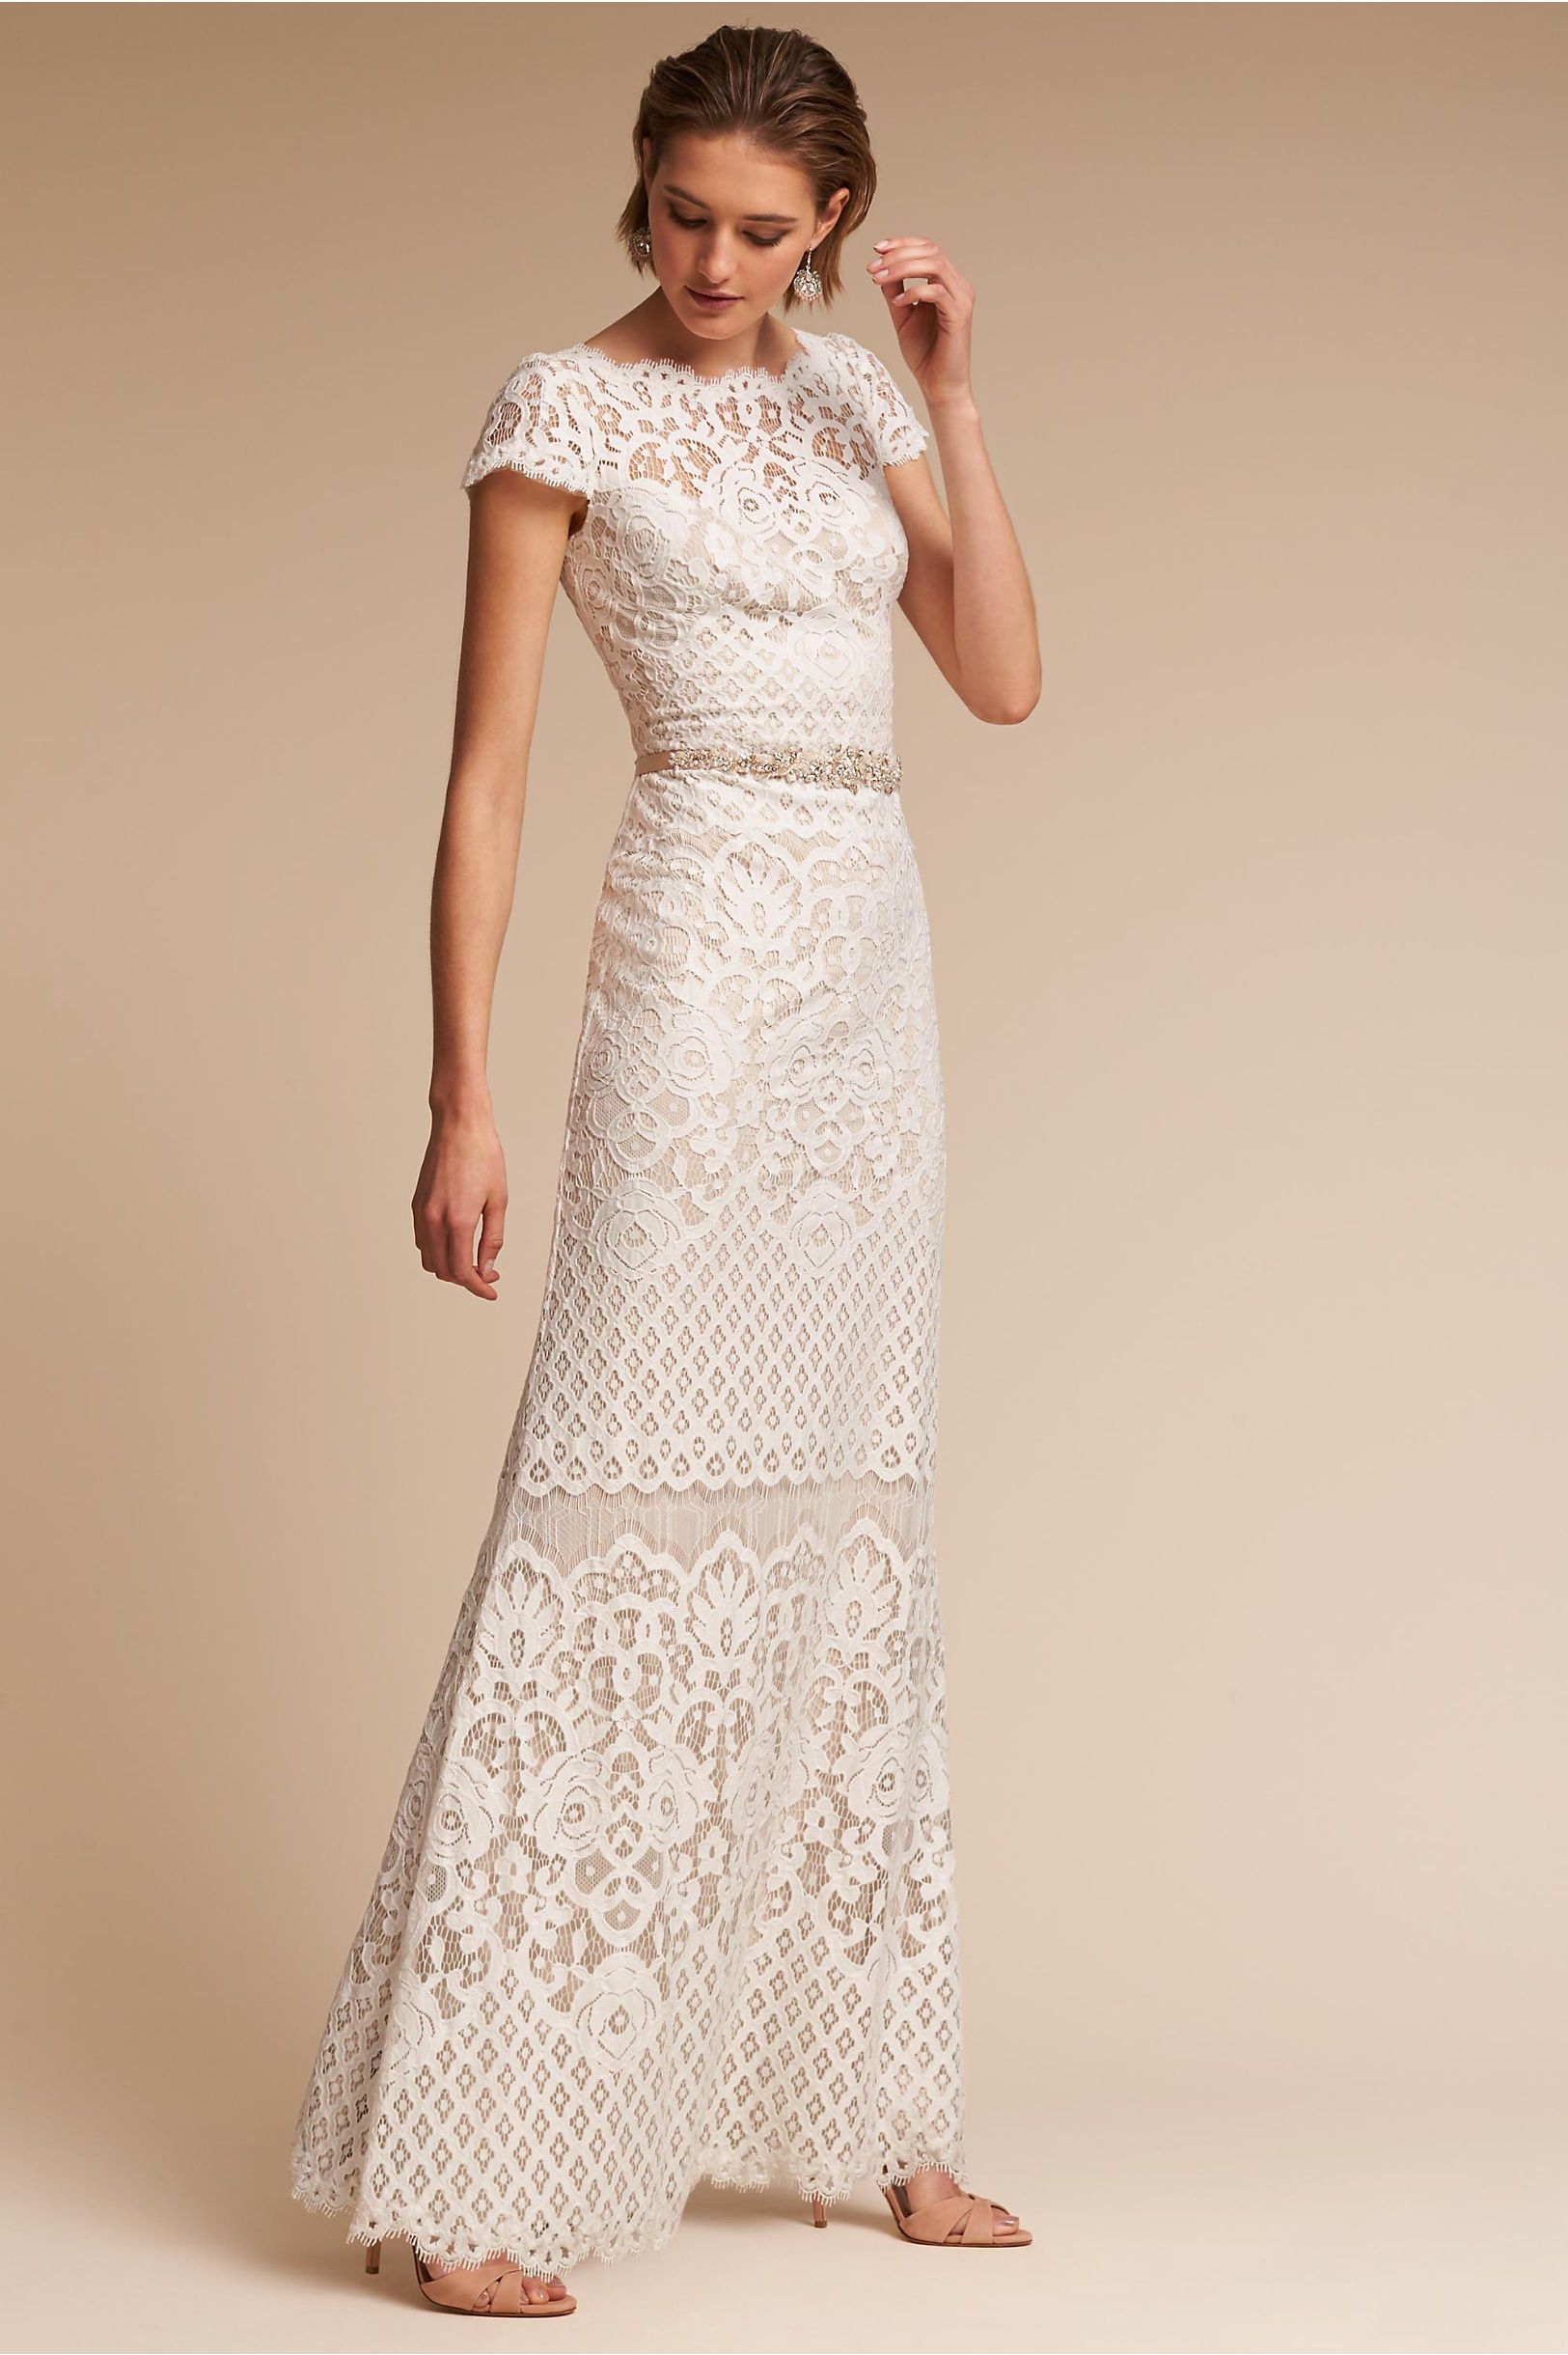 5b0c0ee2cab 5 Affordable Wedding Dresses That Look Like Pippa Middleton s - Peridot Gown  from InStyle.com